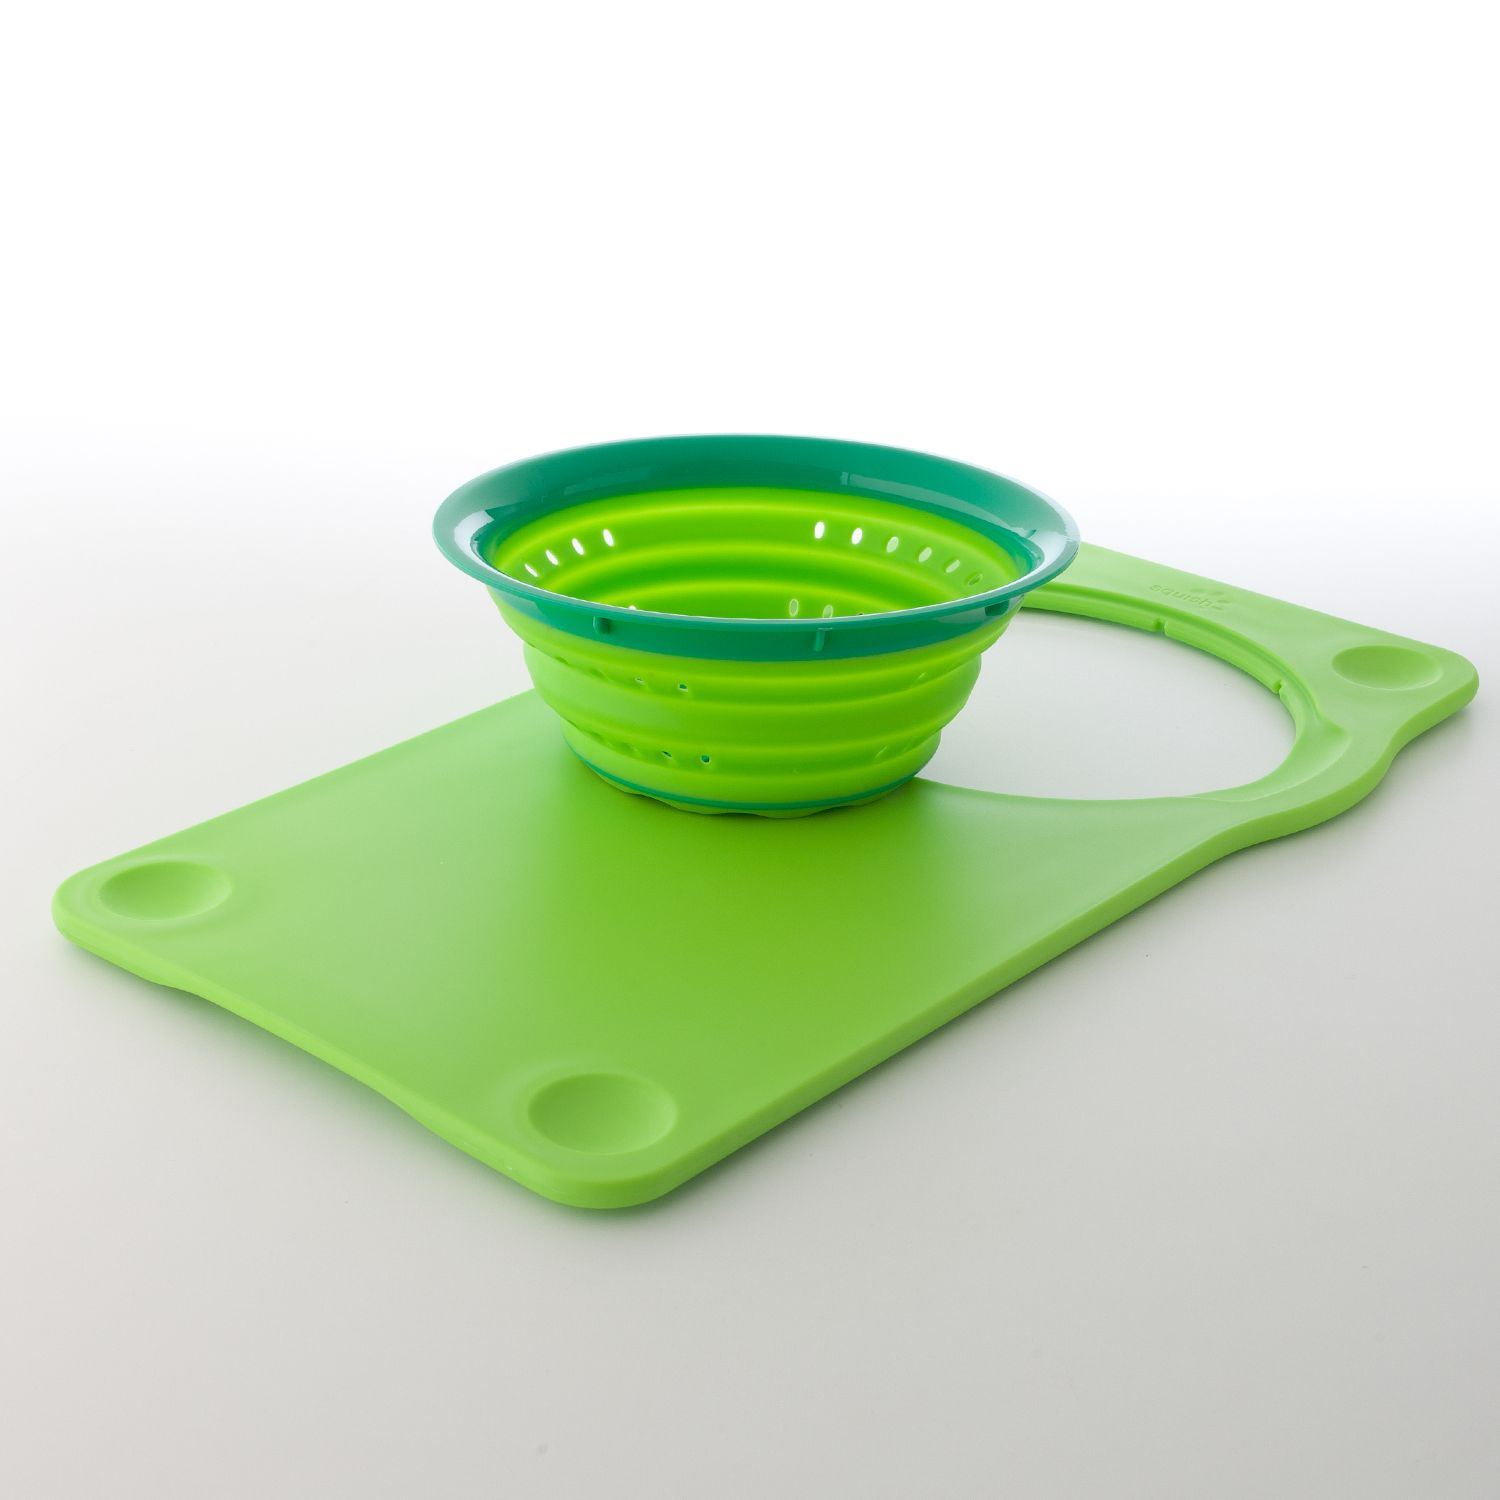 Charming Squish Over The Sink Cutting Board U0026 Collapsible Colander